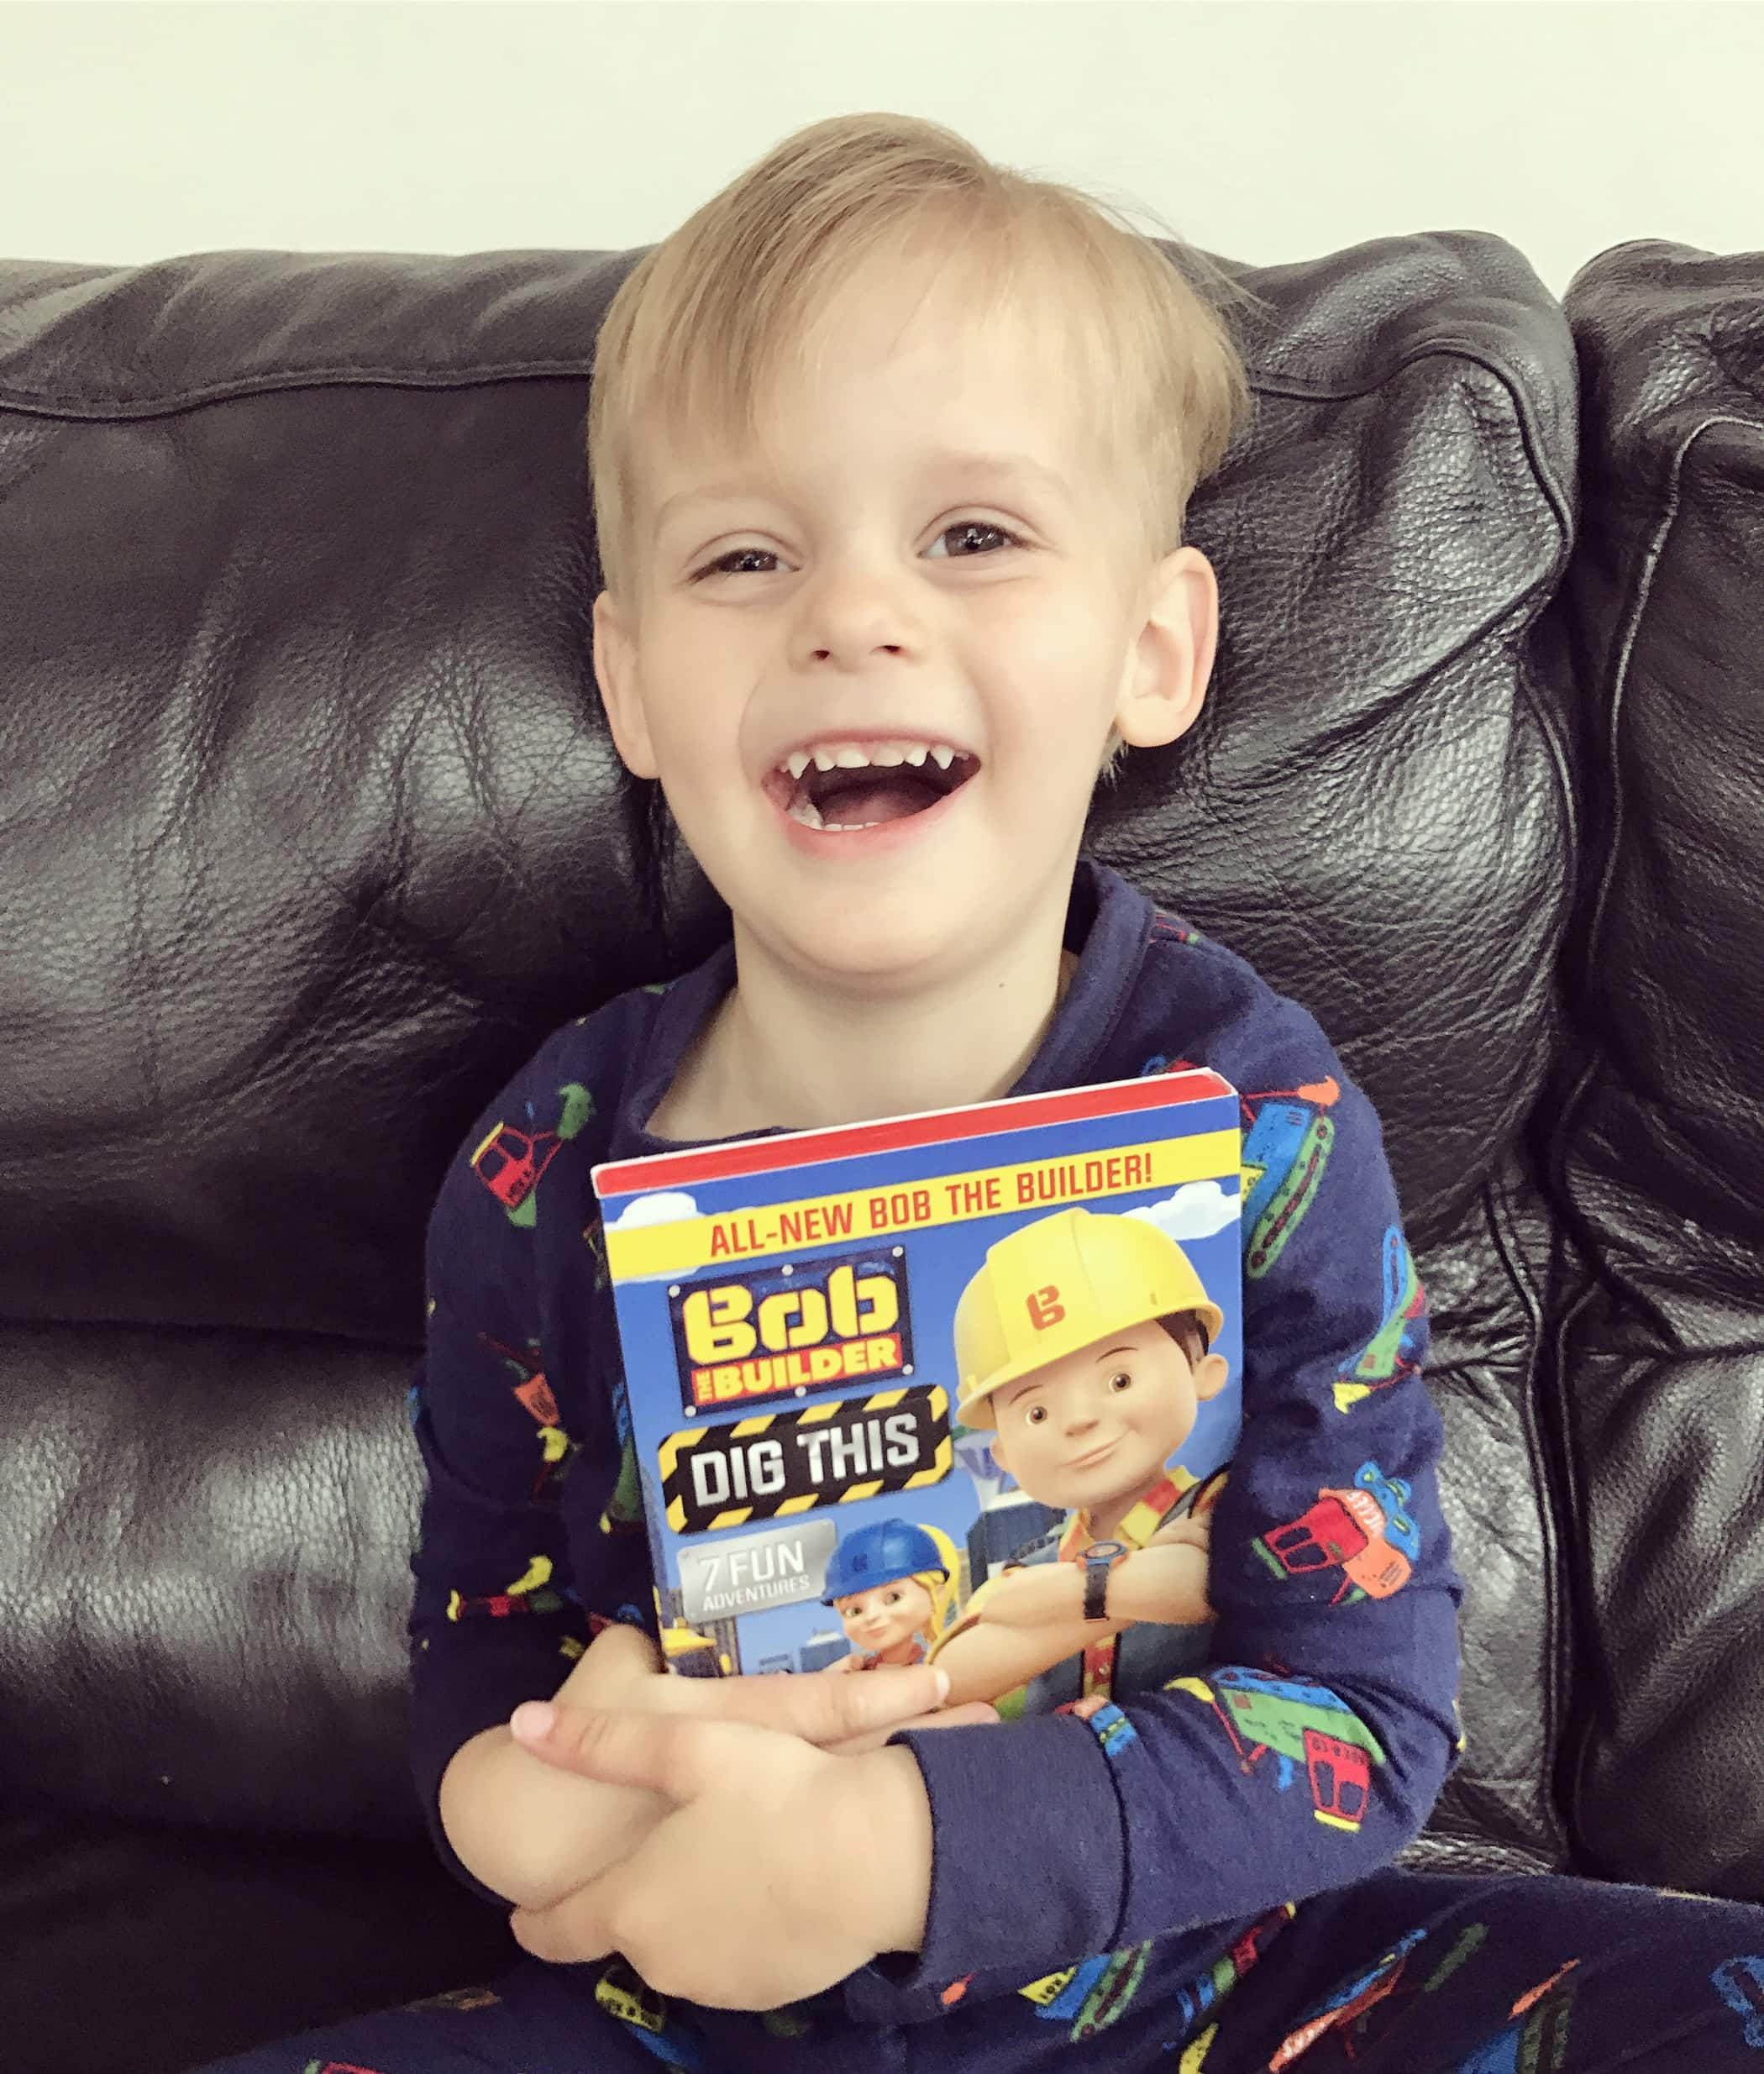 Bob the builder DVD giveaway!